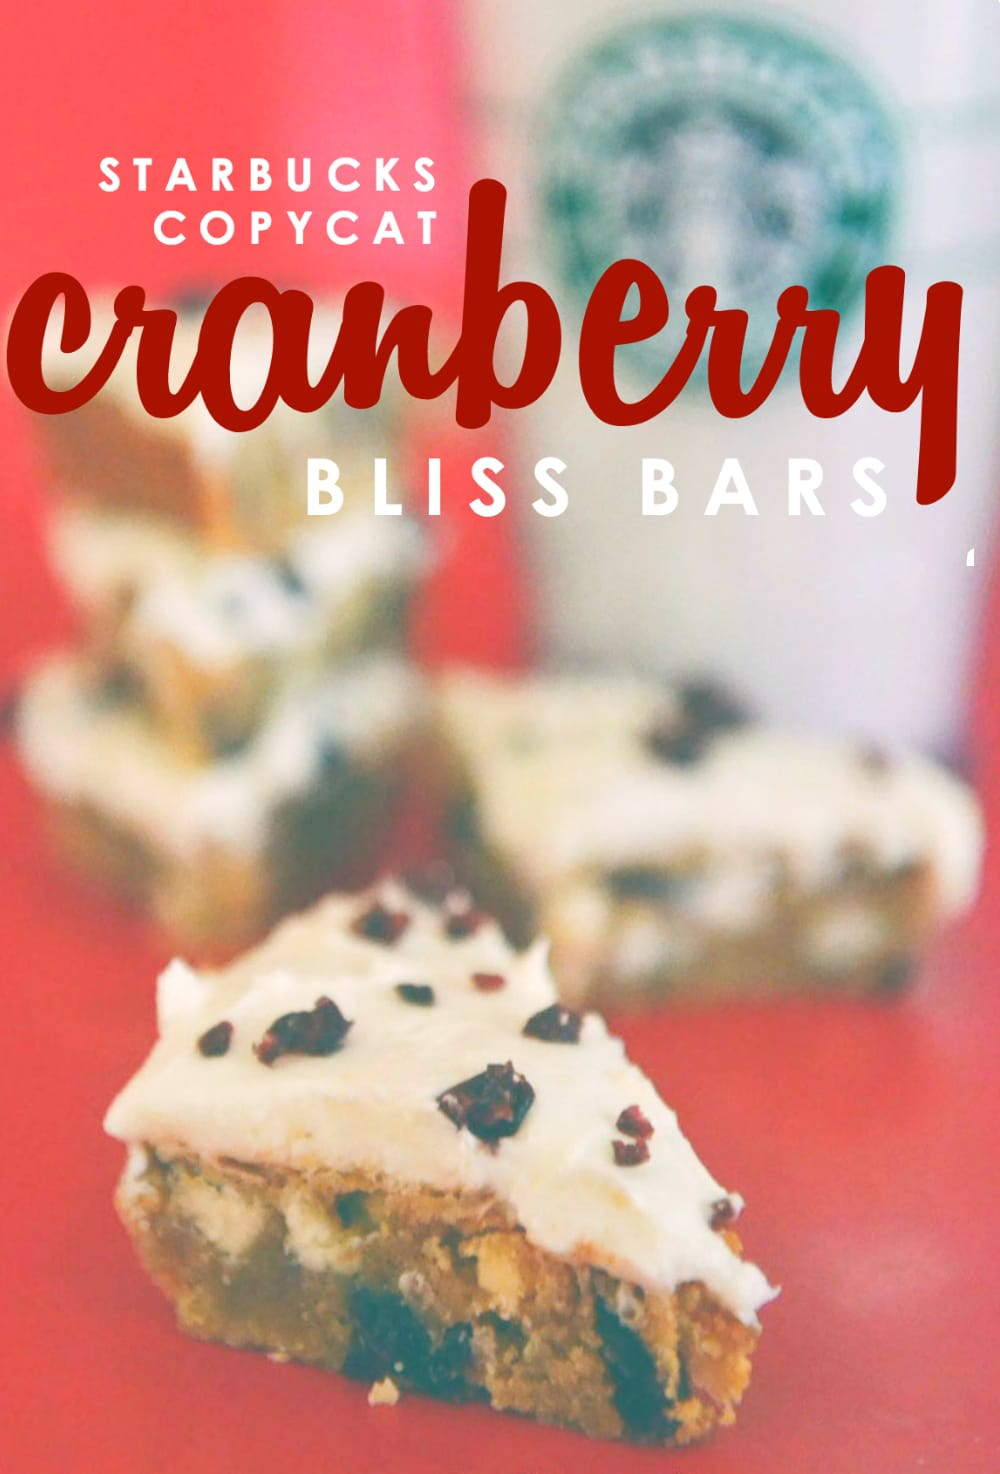 These Copycat Starbucks Cranberry Bliss Bars are yumazing!